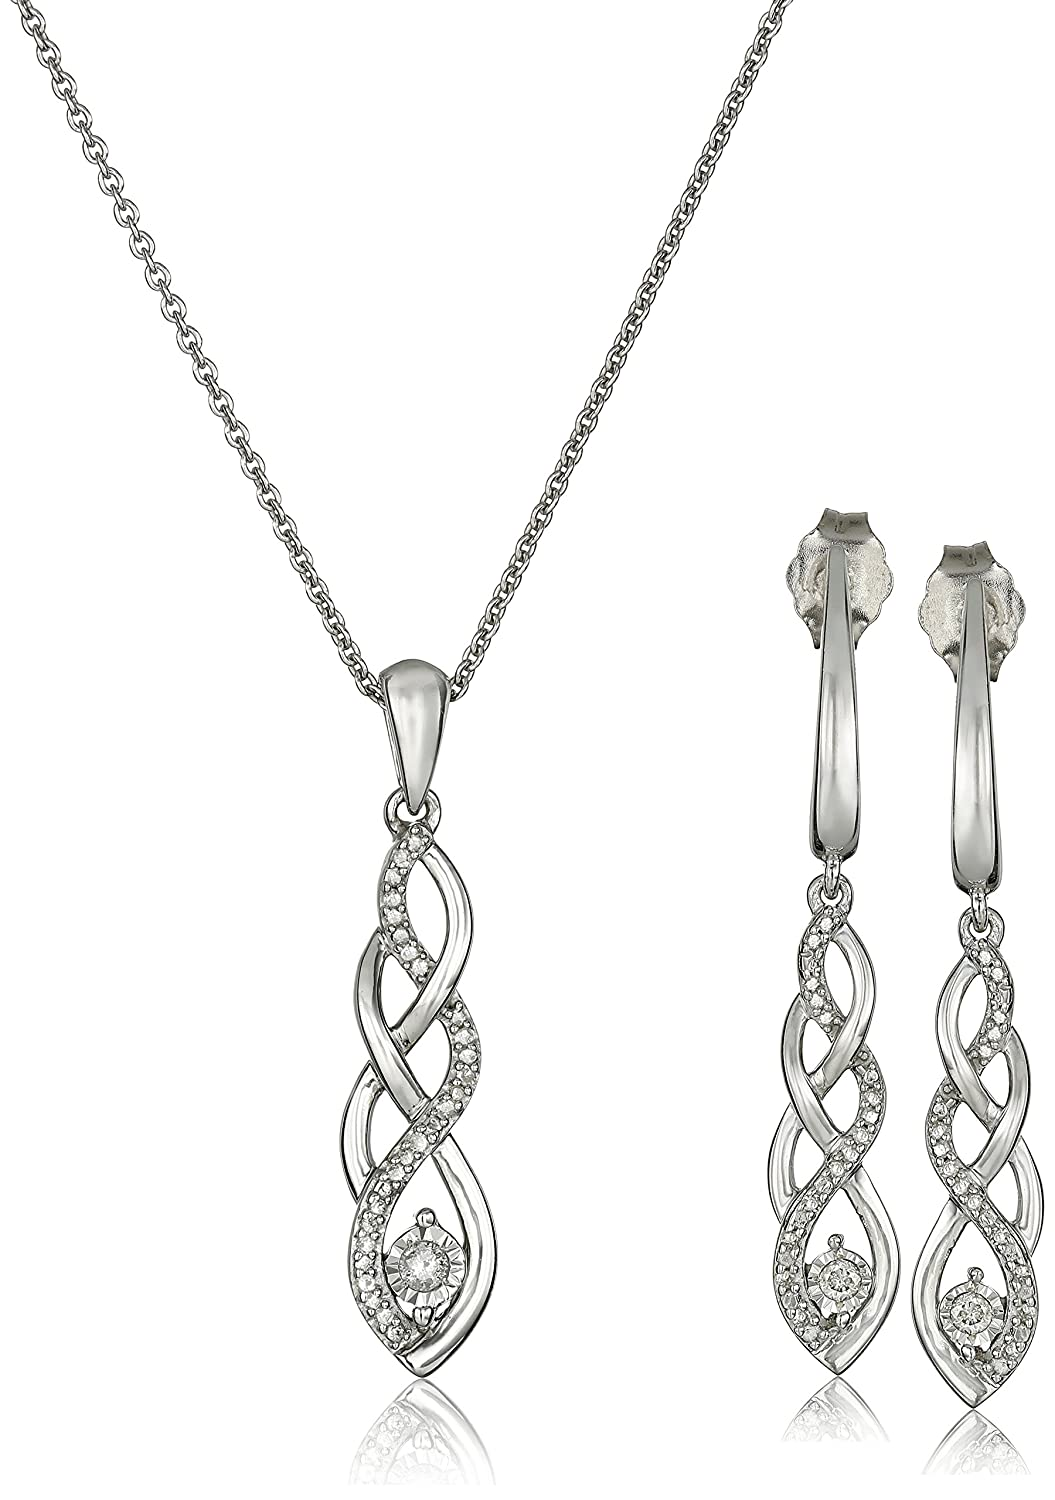 Amazon sterling silver diamond twist pendant necklace and amazon sterling silver diamond twist pendant necklace and earrings box set 15 cttw 18 jewelry sets jewelry aloadofball